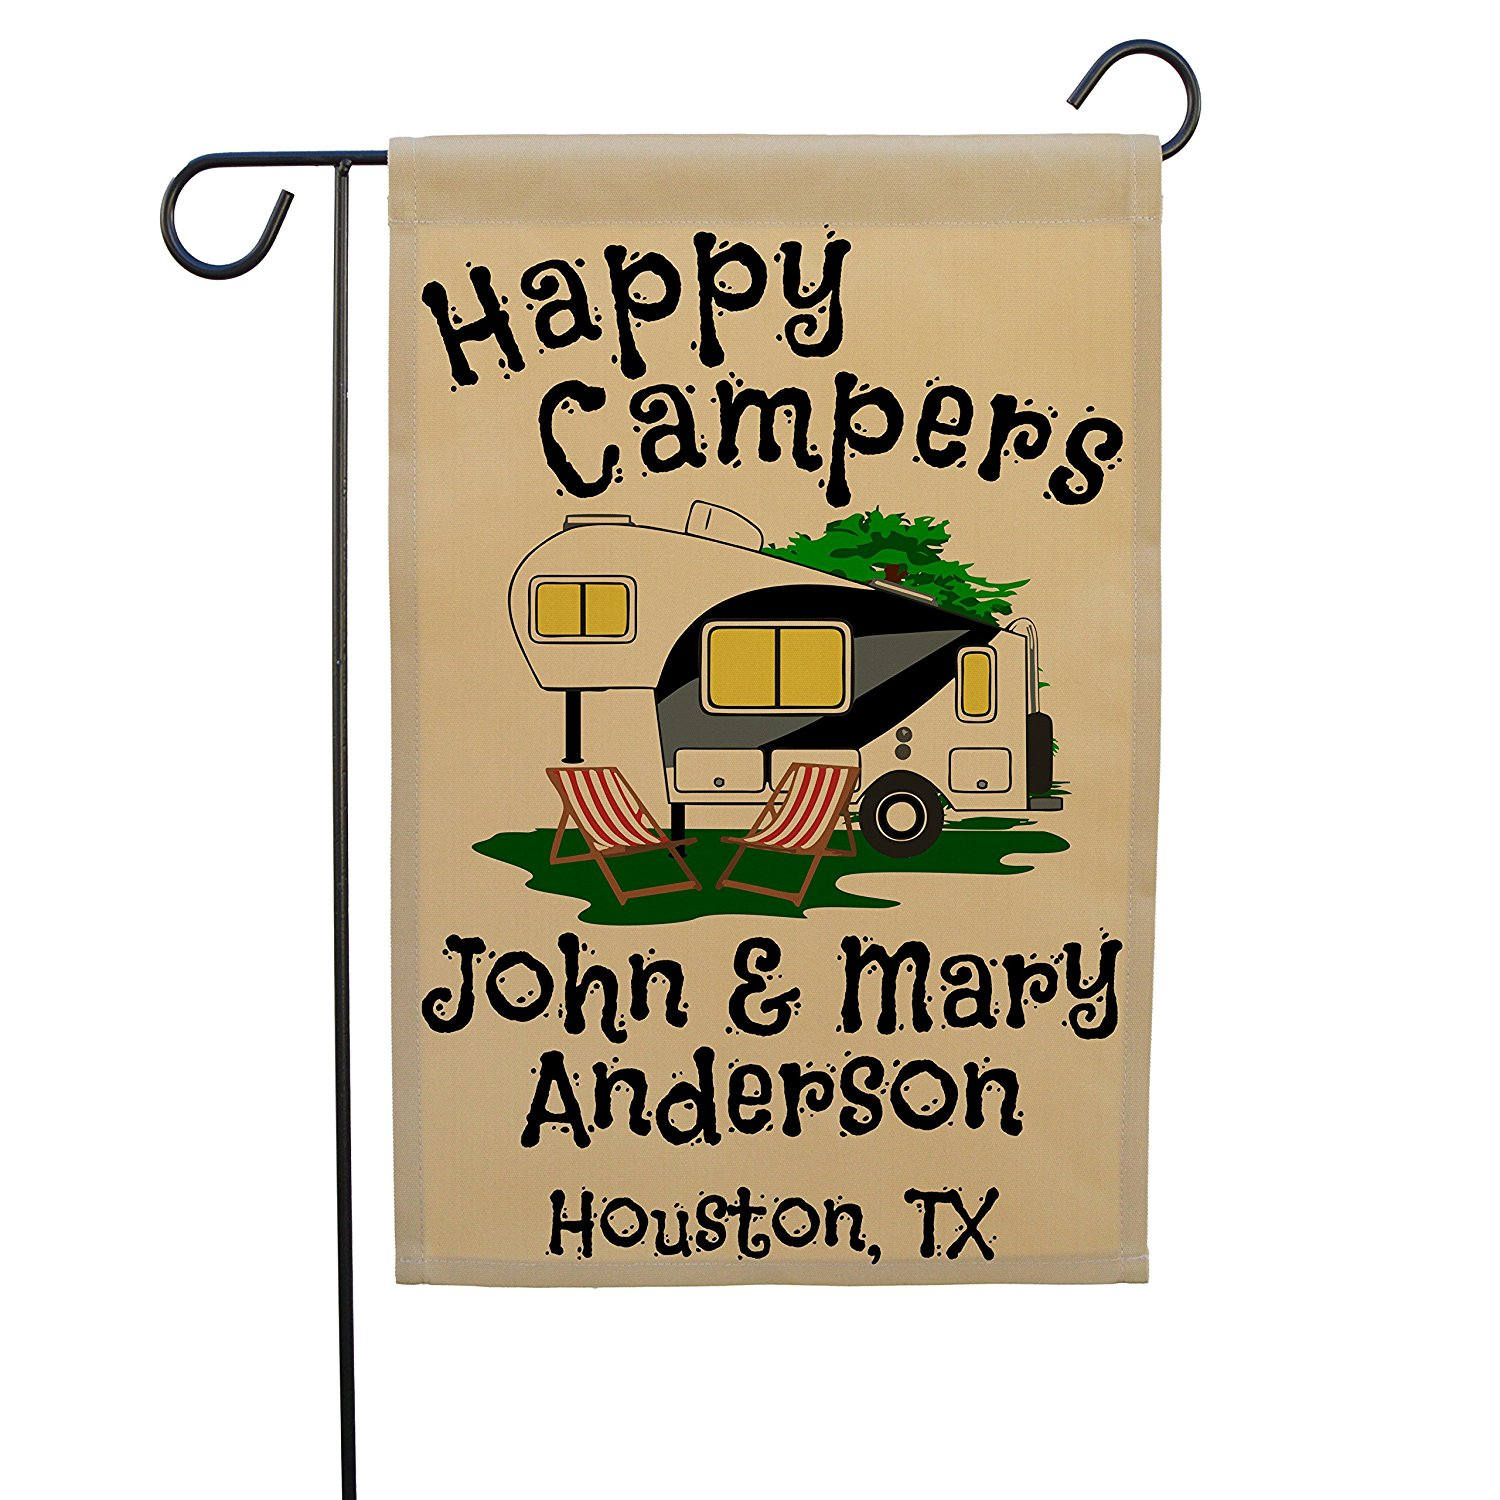 Happy Campers 5th Wheel Personalized Campsite Sign, Garden Flag, Customize Your Way (Black/Gray)